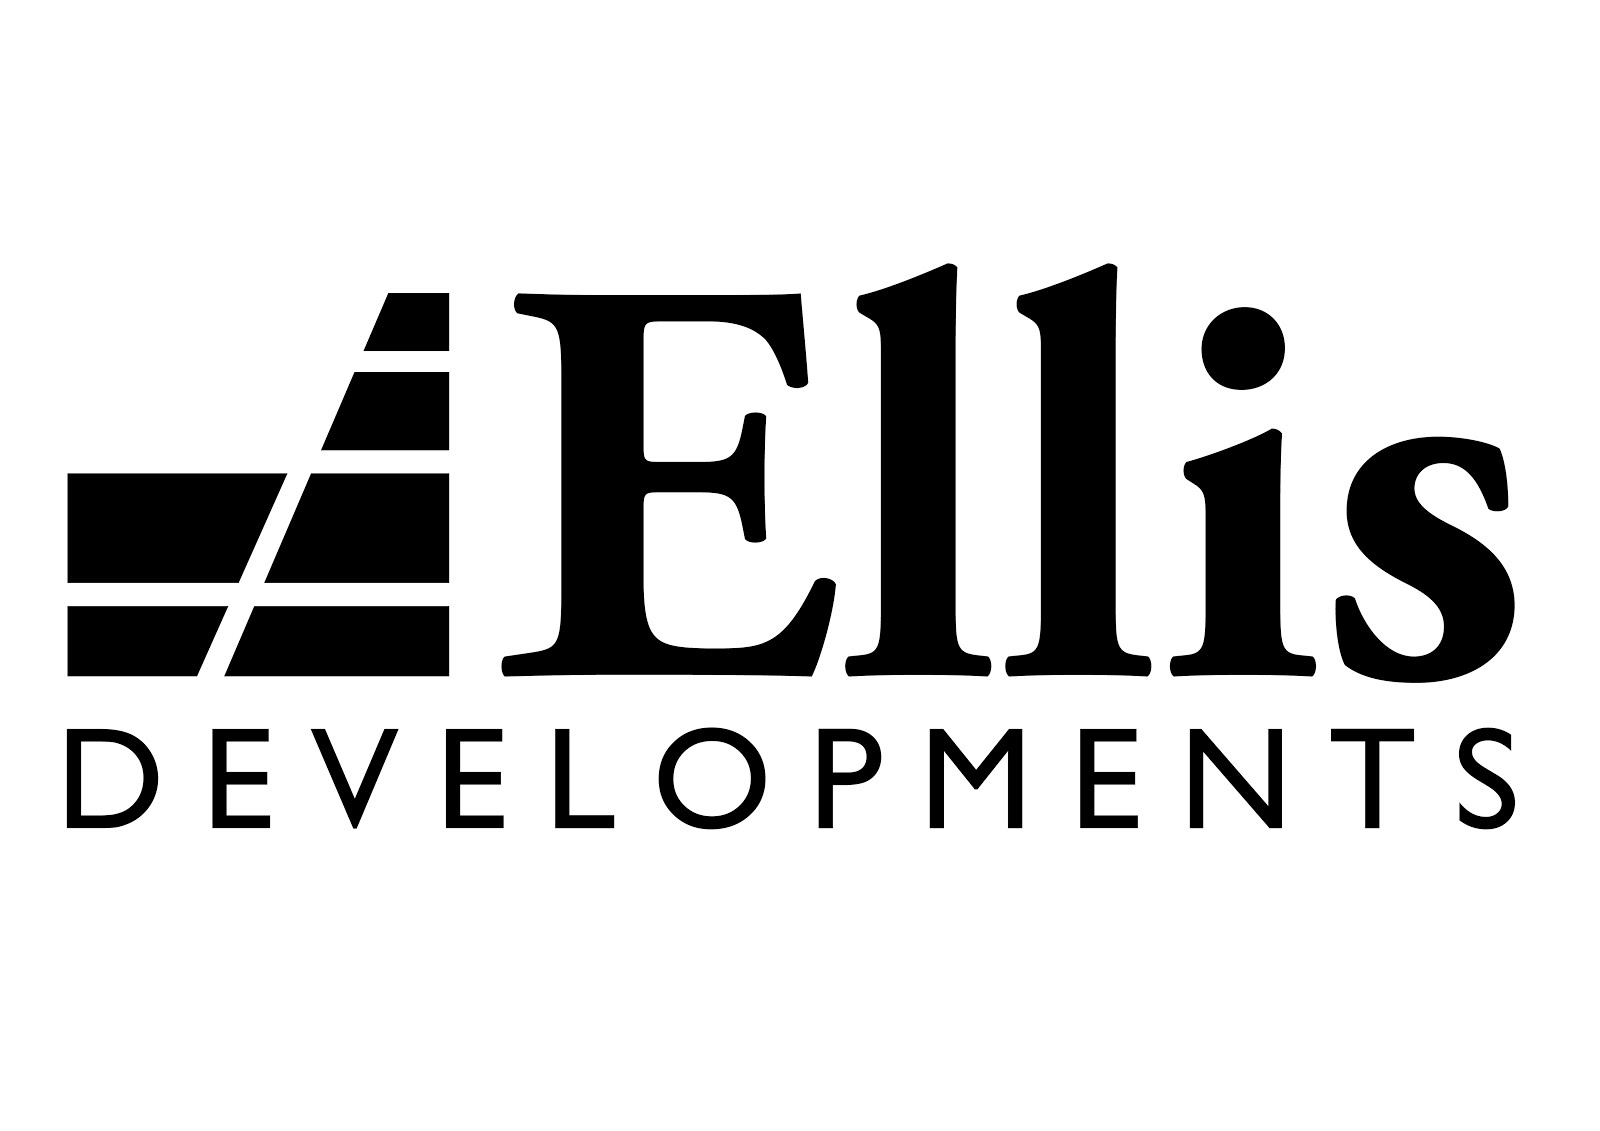 Ellis Developments